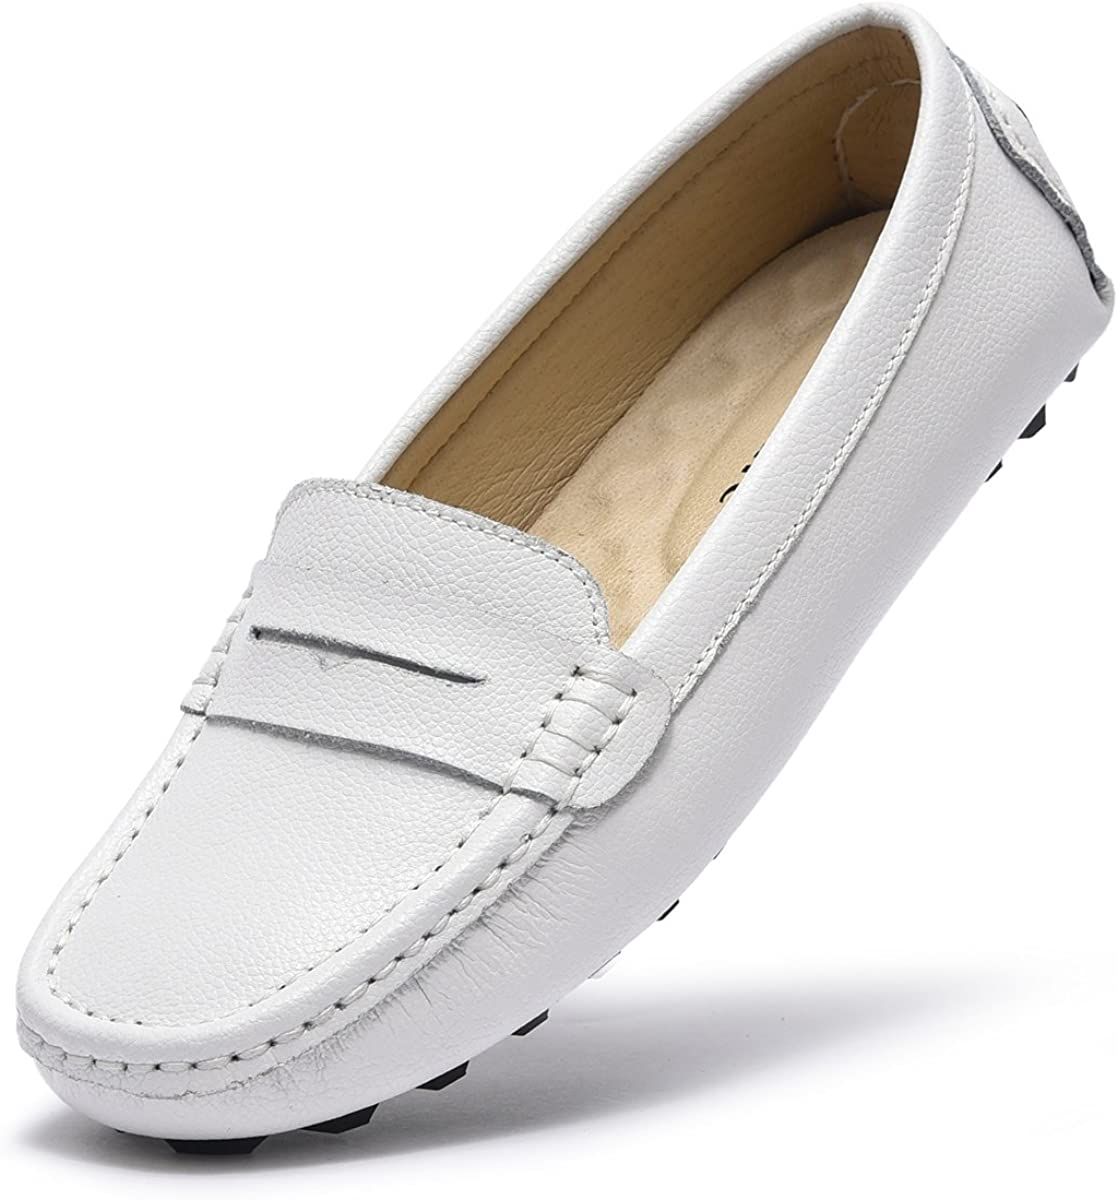 Artisure Women's Classic Genuine Leather Penny Loafers New products, world's highest quality popular! M Driving Max 57% OFF